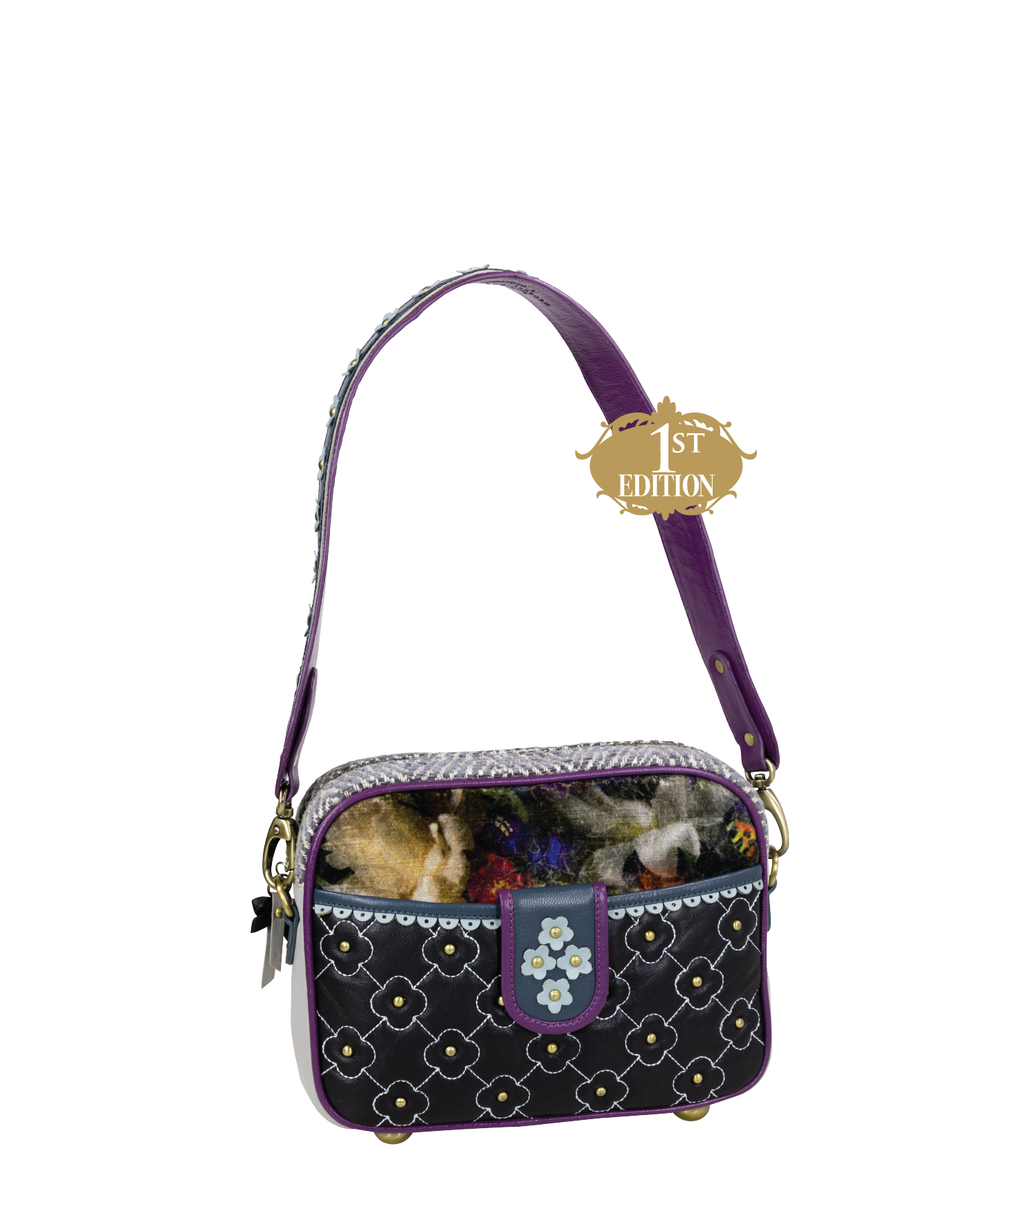 BETTY Crossbody Bag - Twilight - 1st Edition